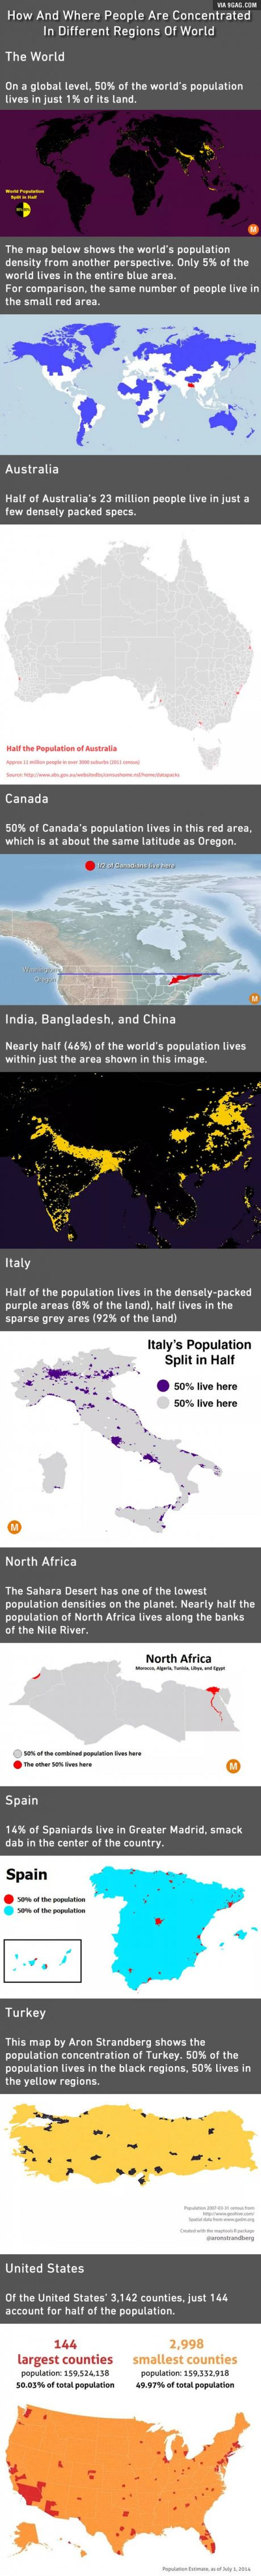 These Maps Show How Much Of The World's Population Occupies So Little Of Its Land. What Can We Do On The Unoccupied?